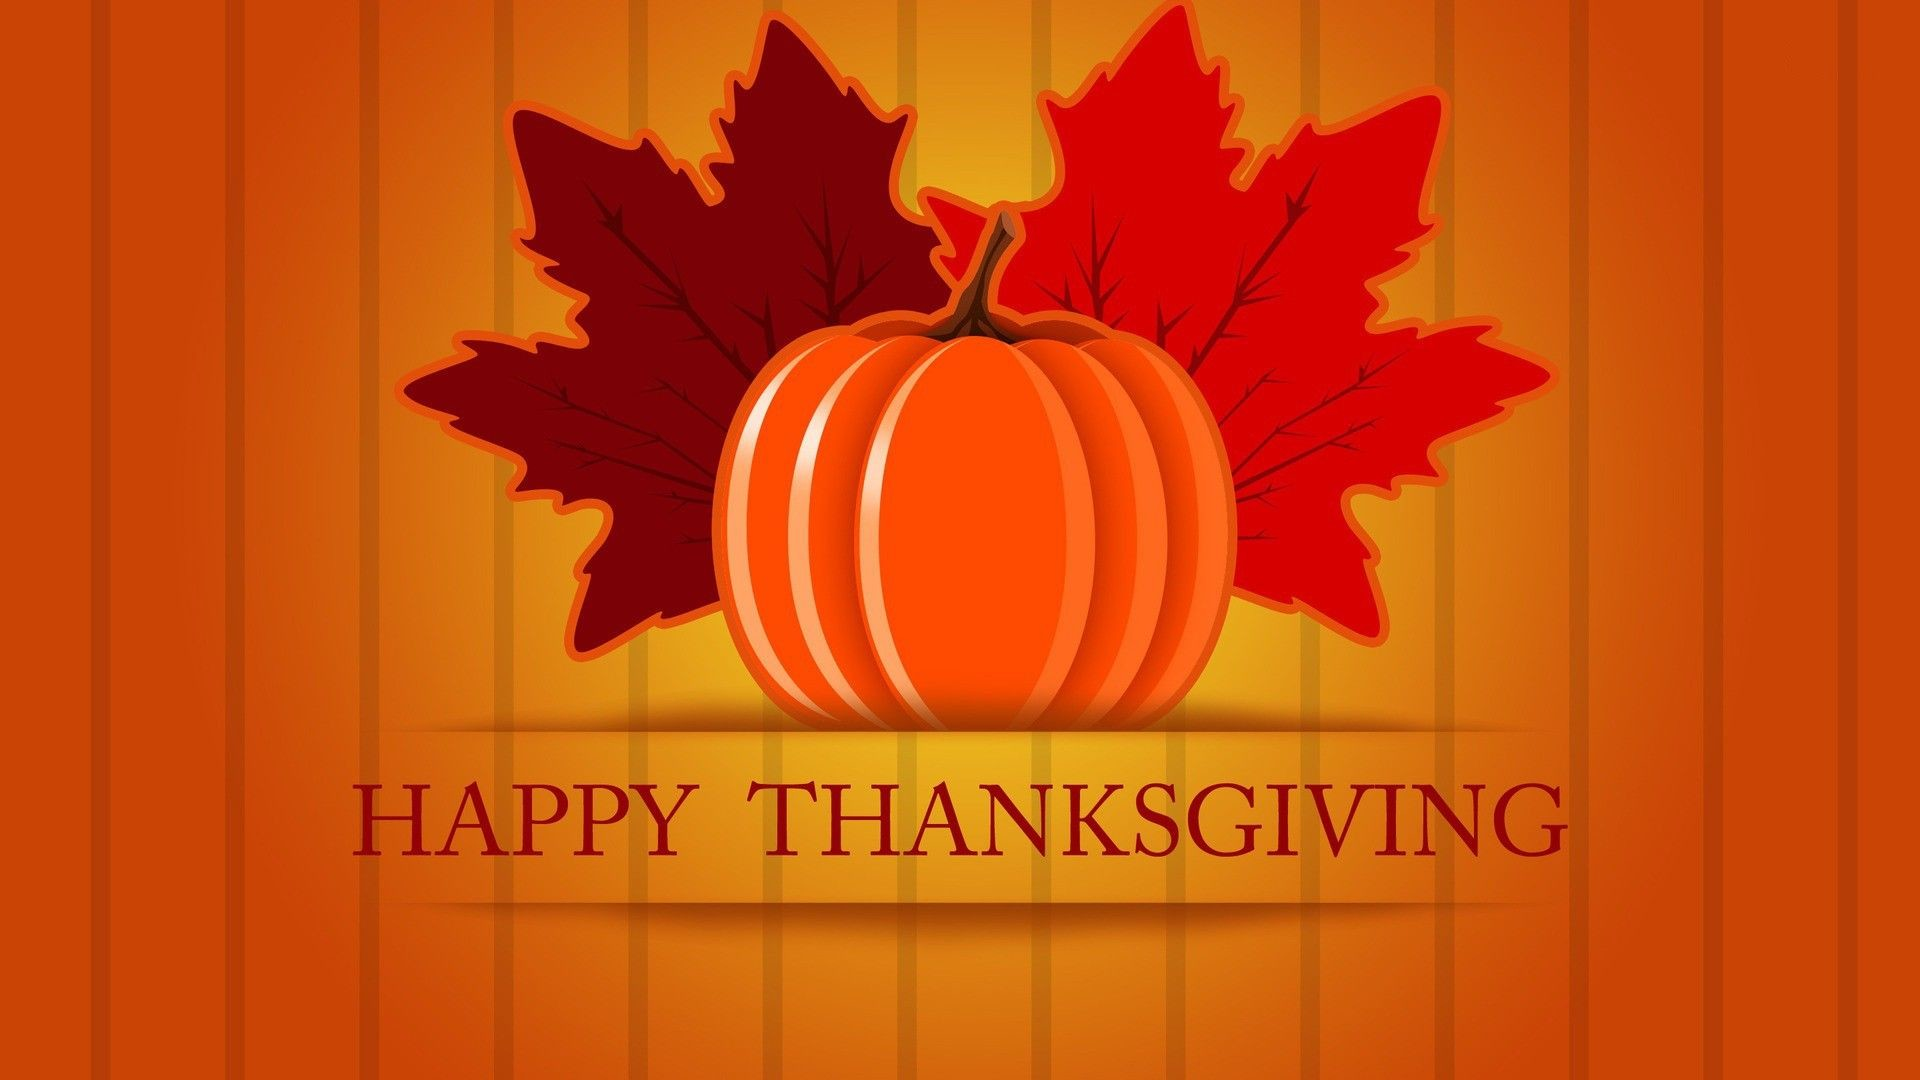 Res: 1920x1080, Thanksgiving Day Wallpapers High Resolution and Quality Download